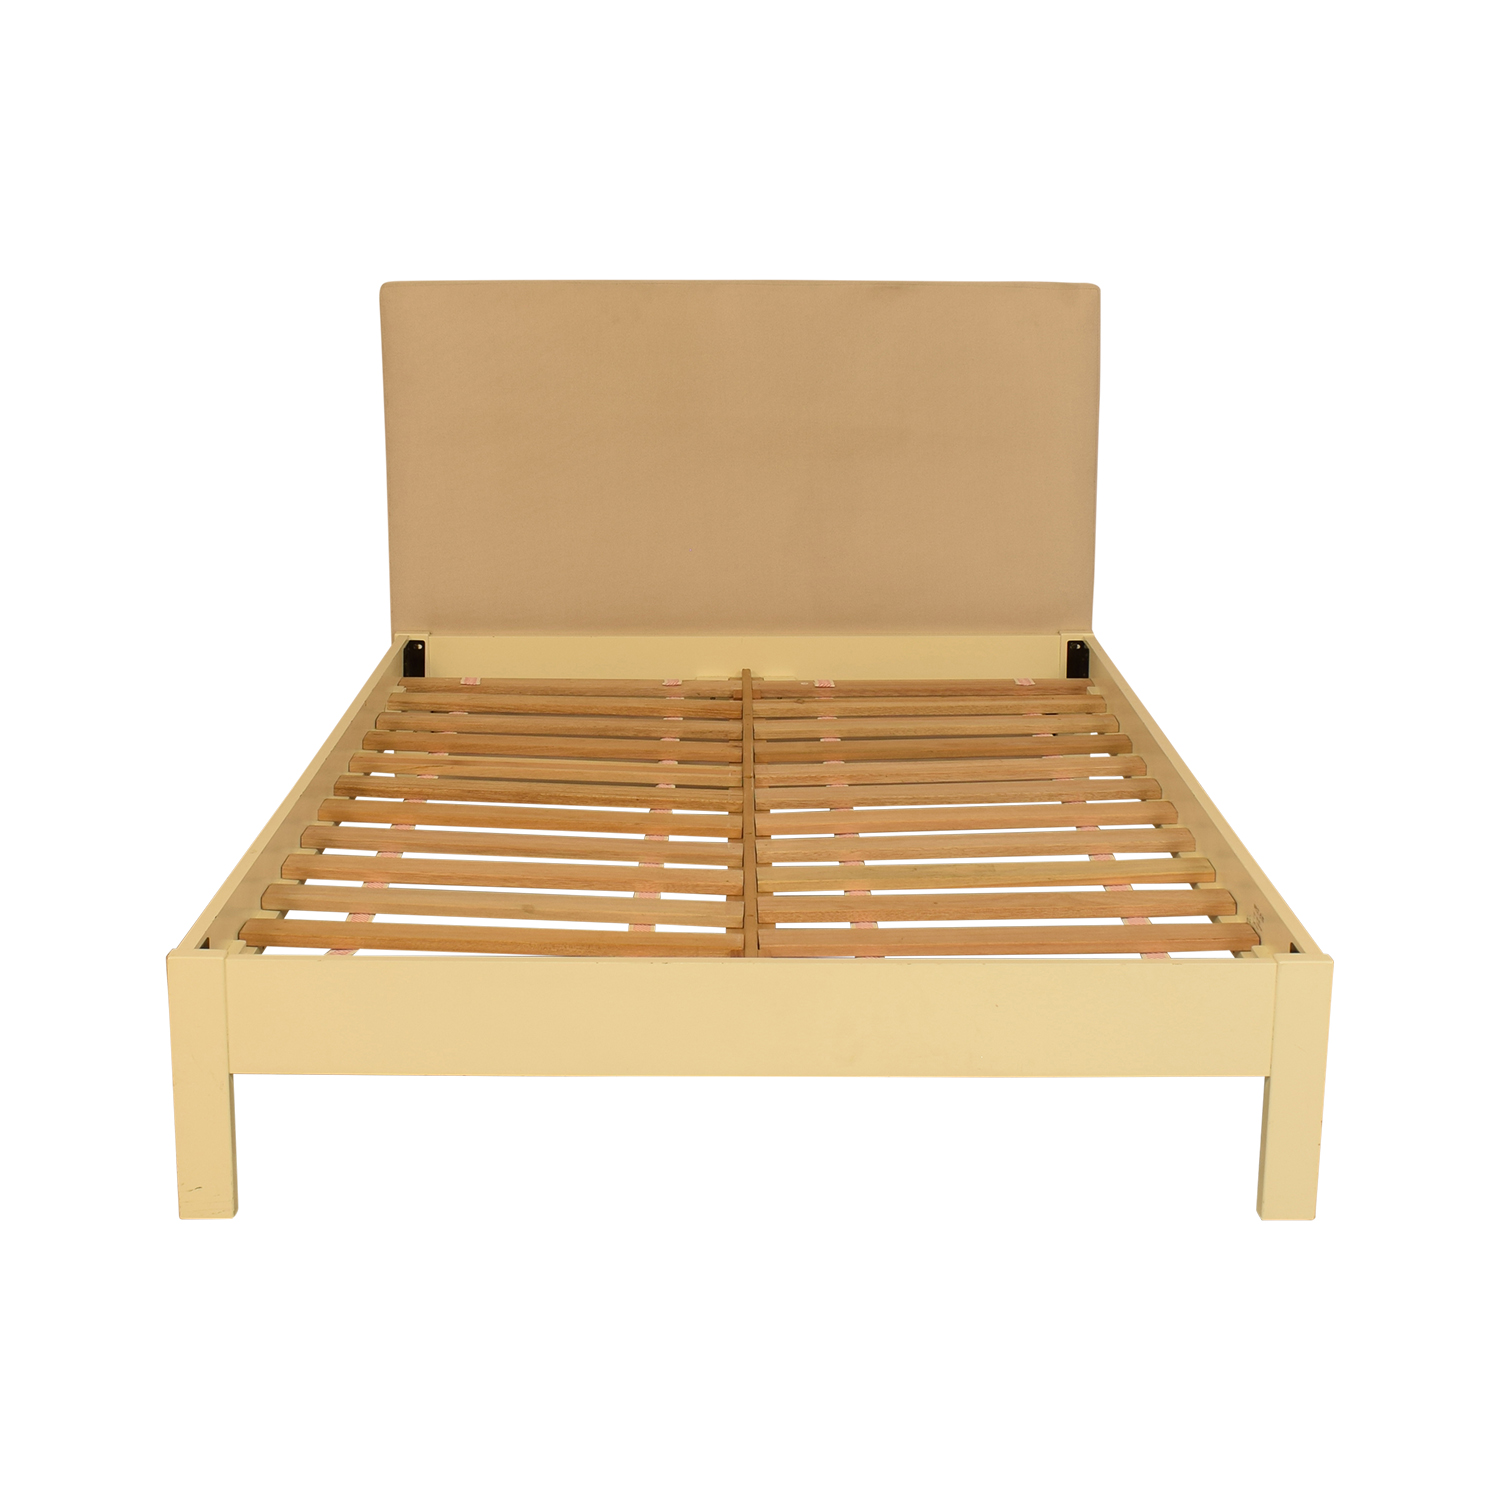 West Elm West Elm Full Bed Frame dimensions